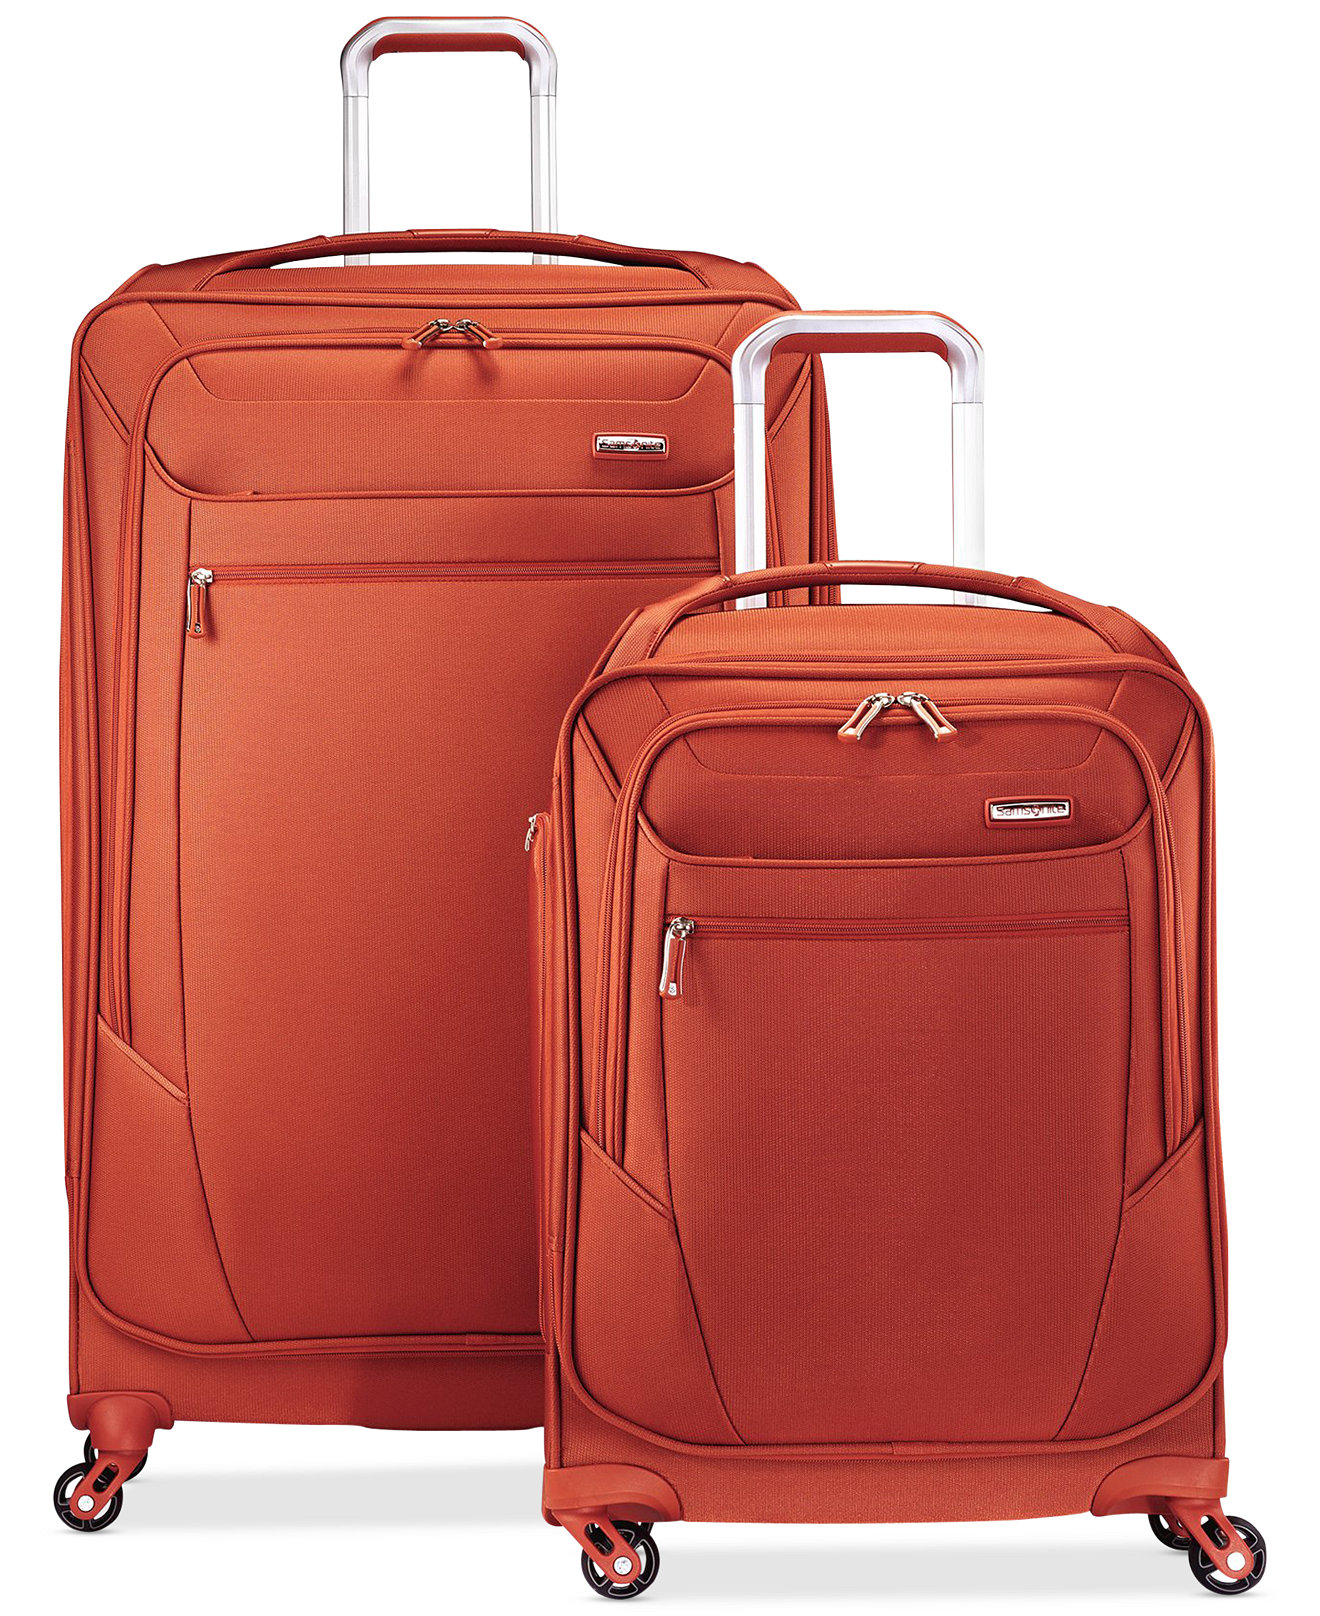 Samsonite Lightweight Spinner Luggage Sets   Luggage And Suitcases